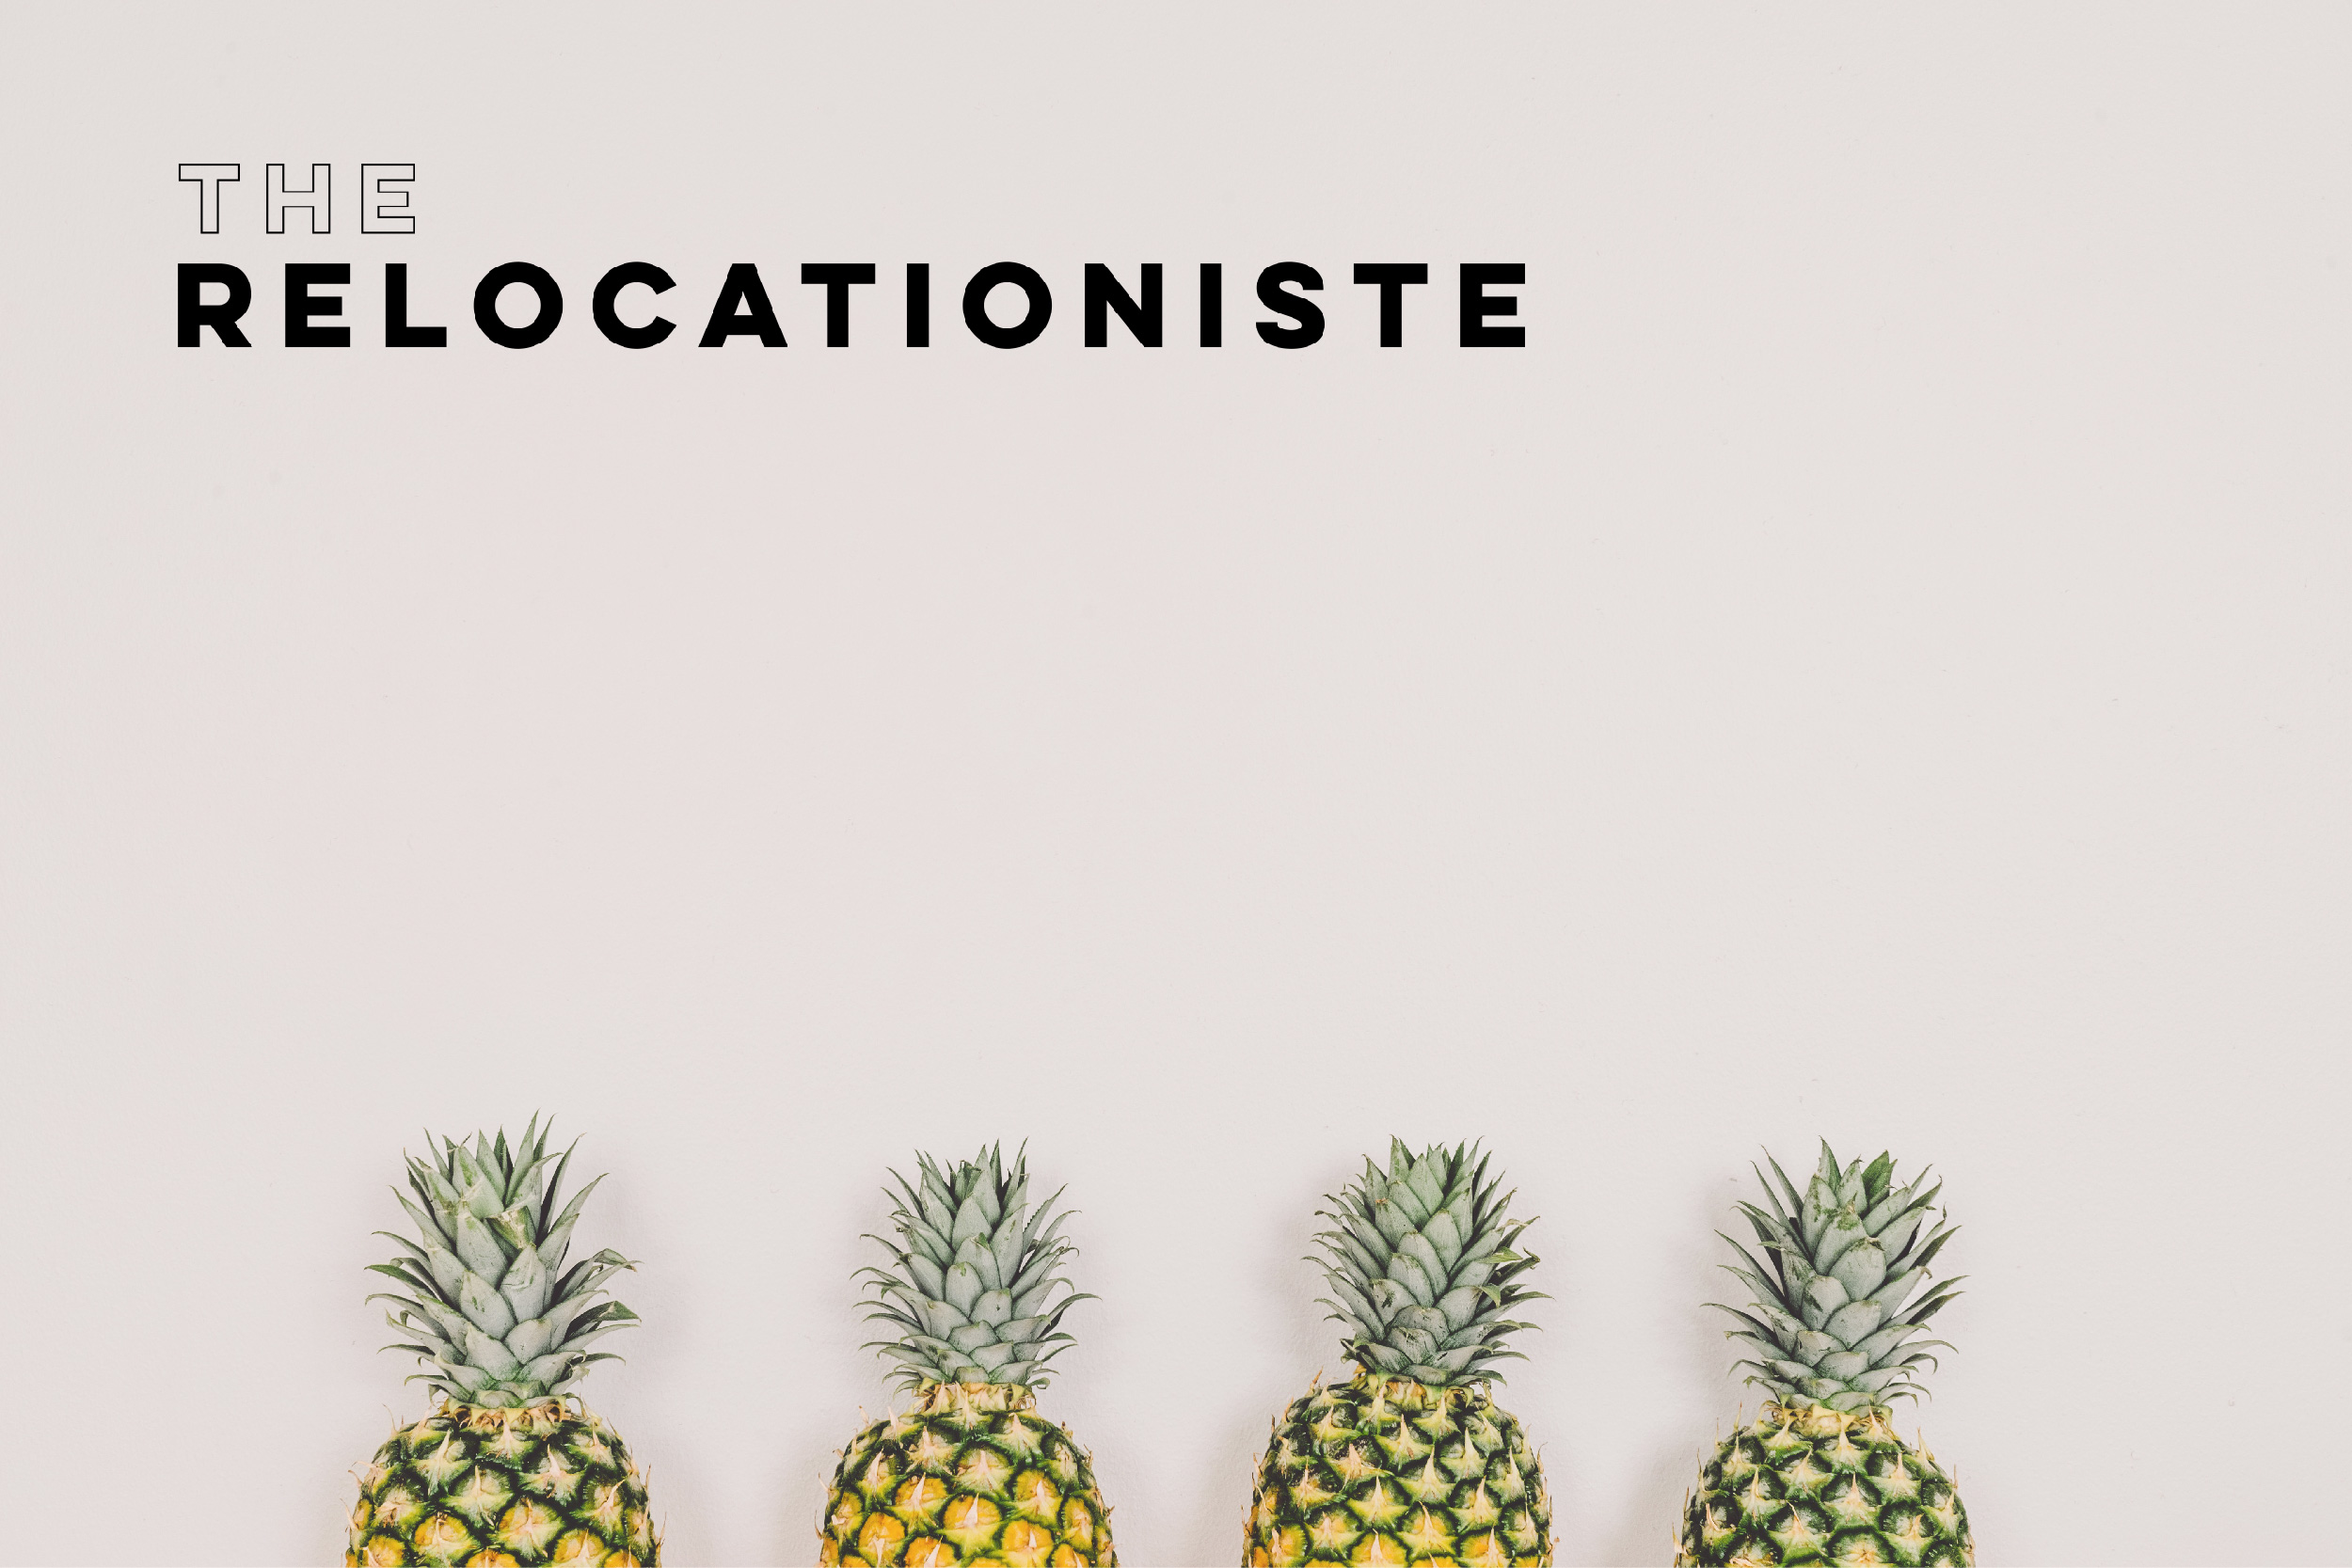 TheRelocationiste+w+Pineapples.jpg